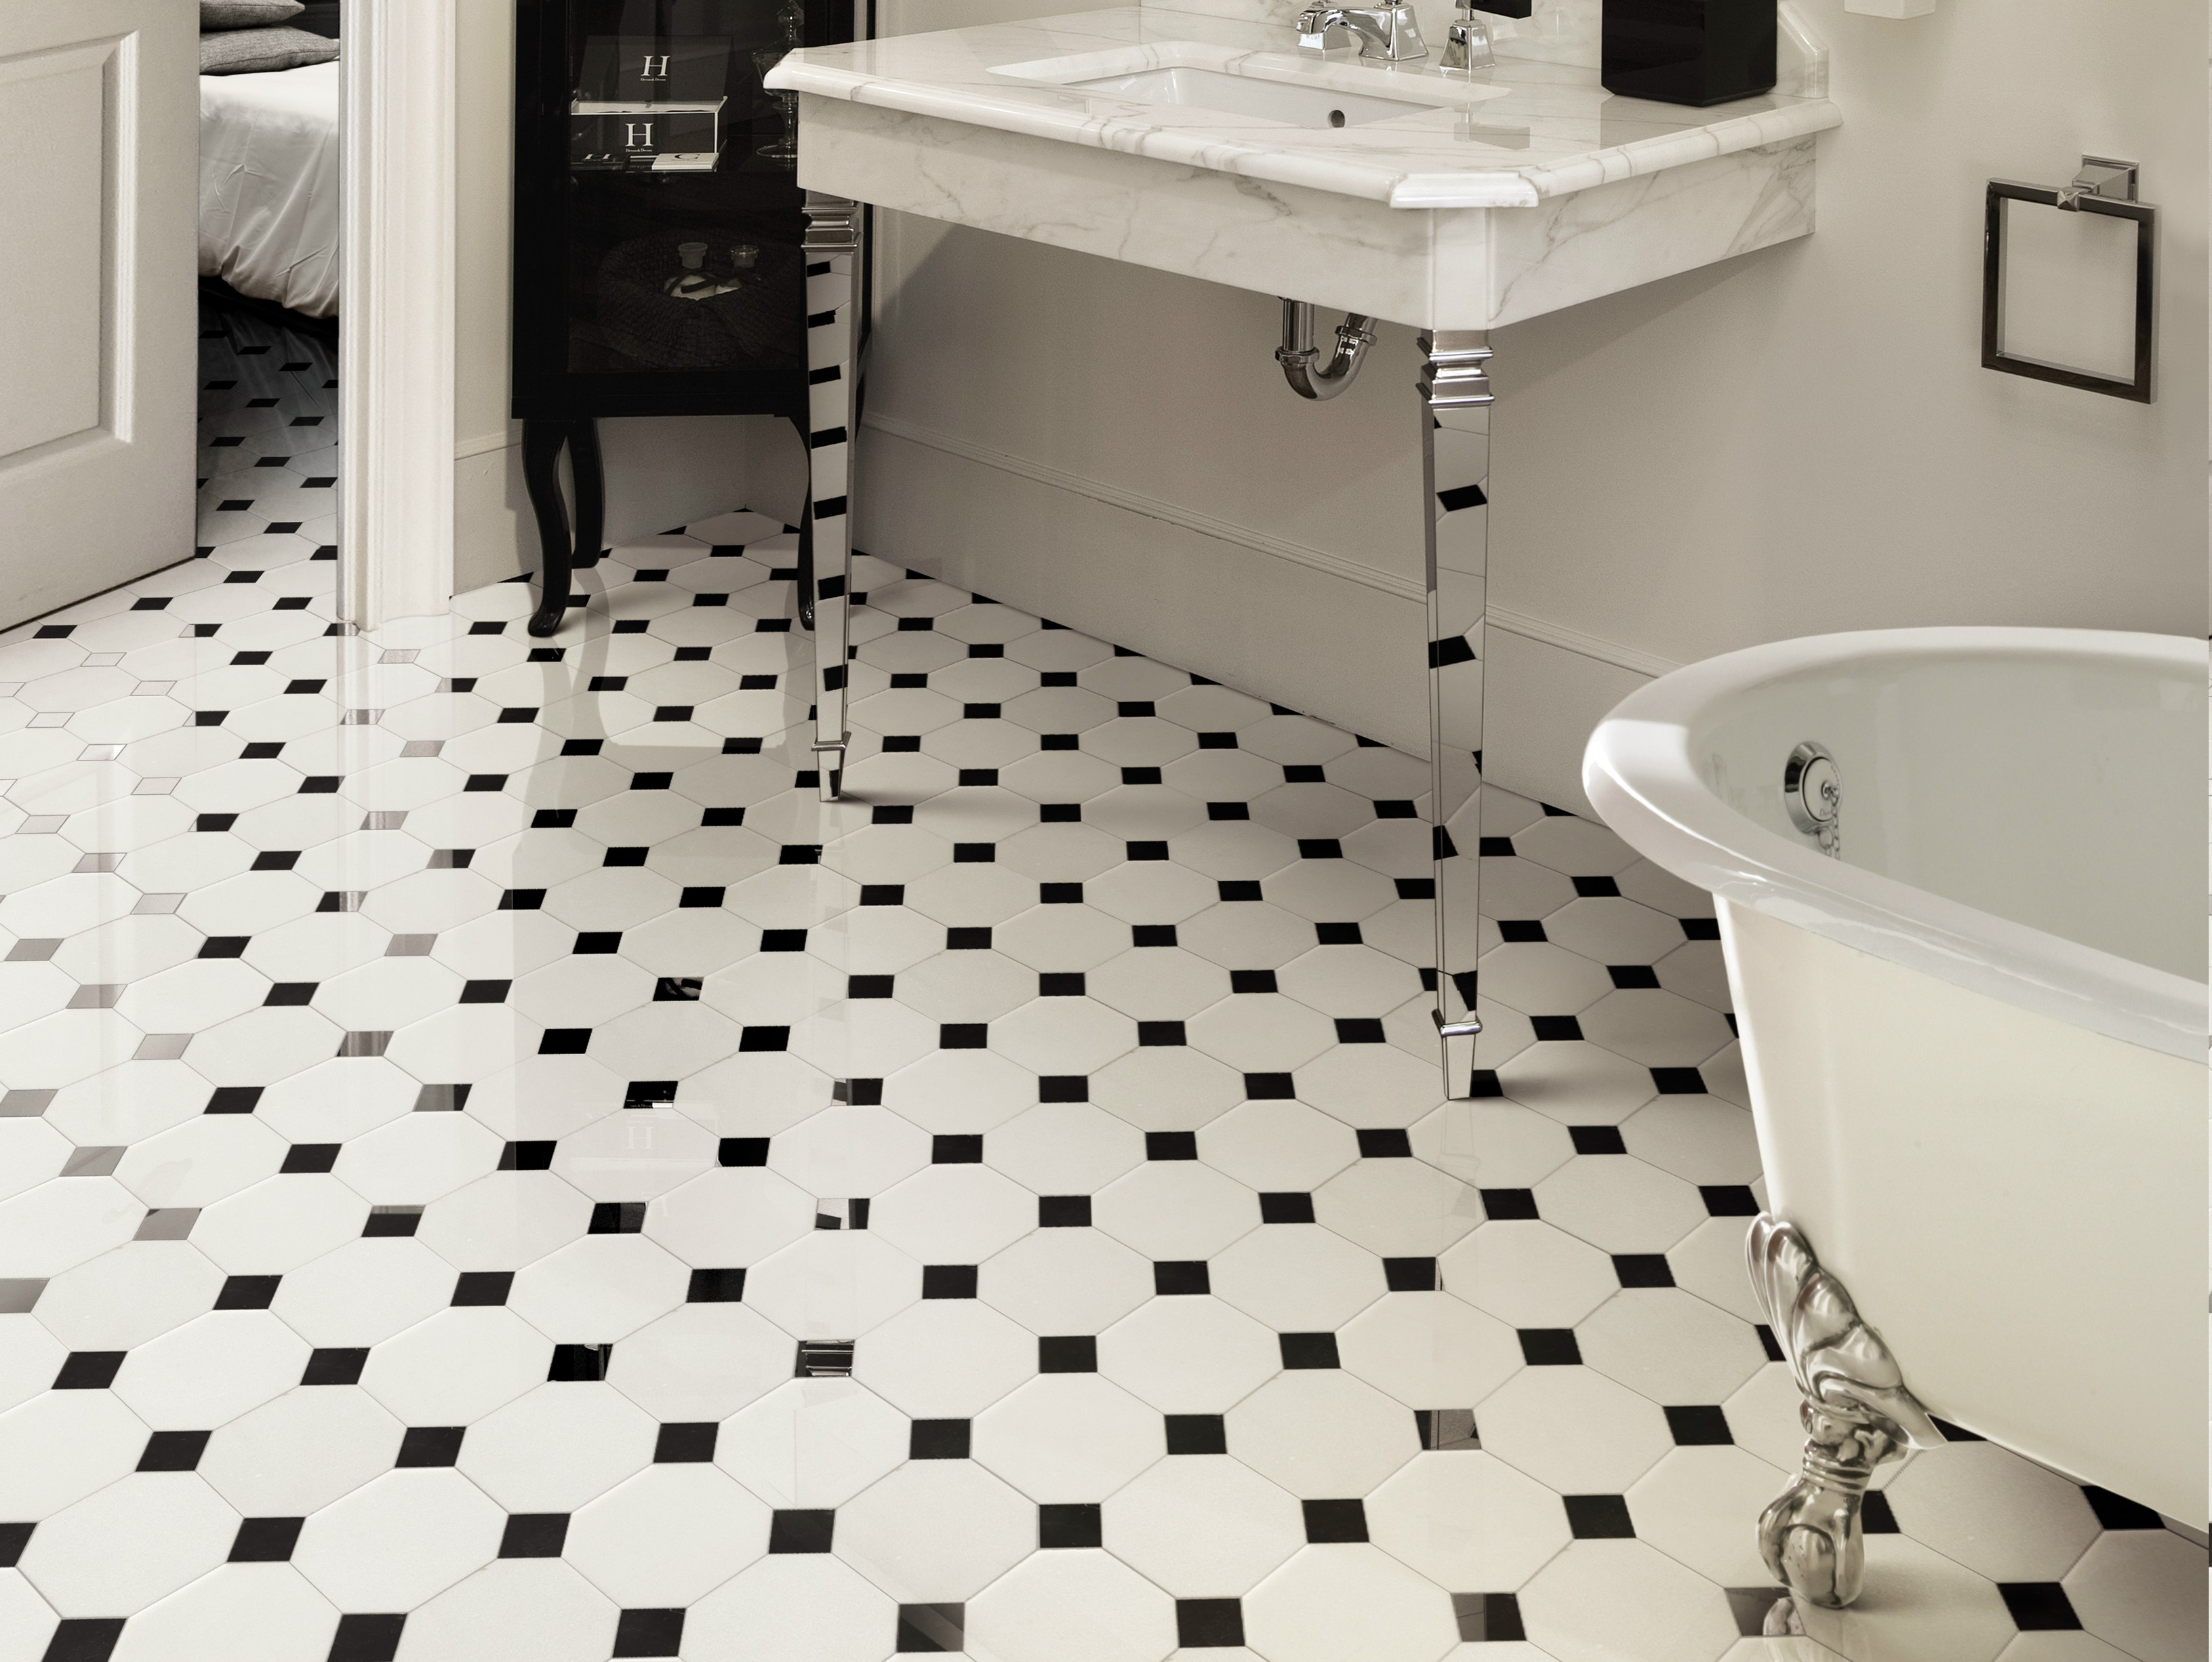 10 Marble Floor Designs For Styling Every House Itday